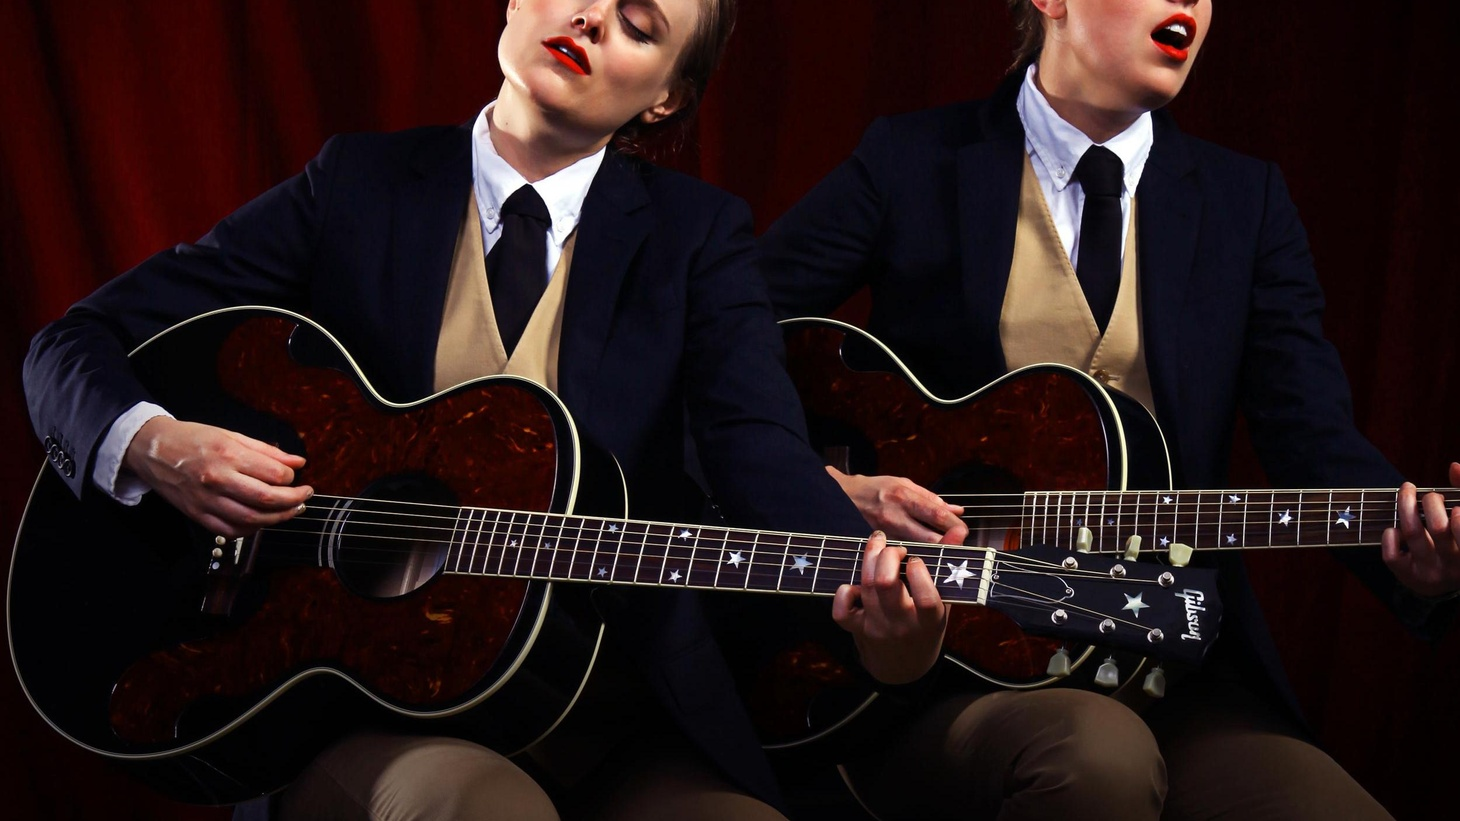 The Chapin Sisters have been touring as the backing vocalists for She & Him and, on their own full-length, tackle harmonies made famous by The Everly Brothers.